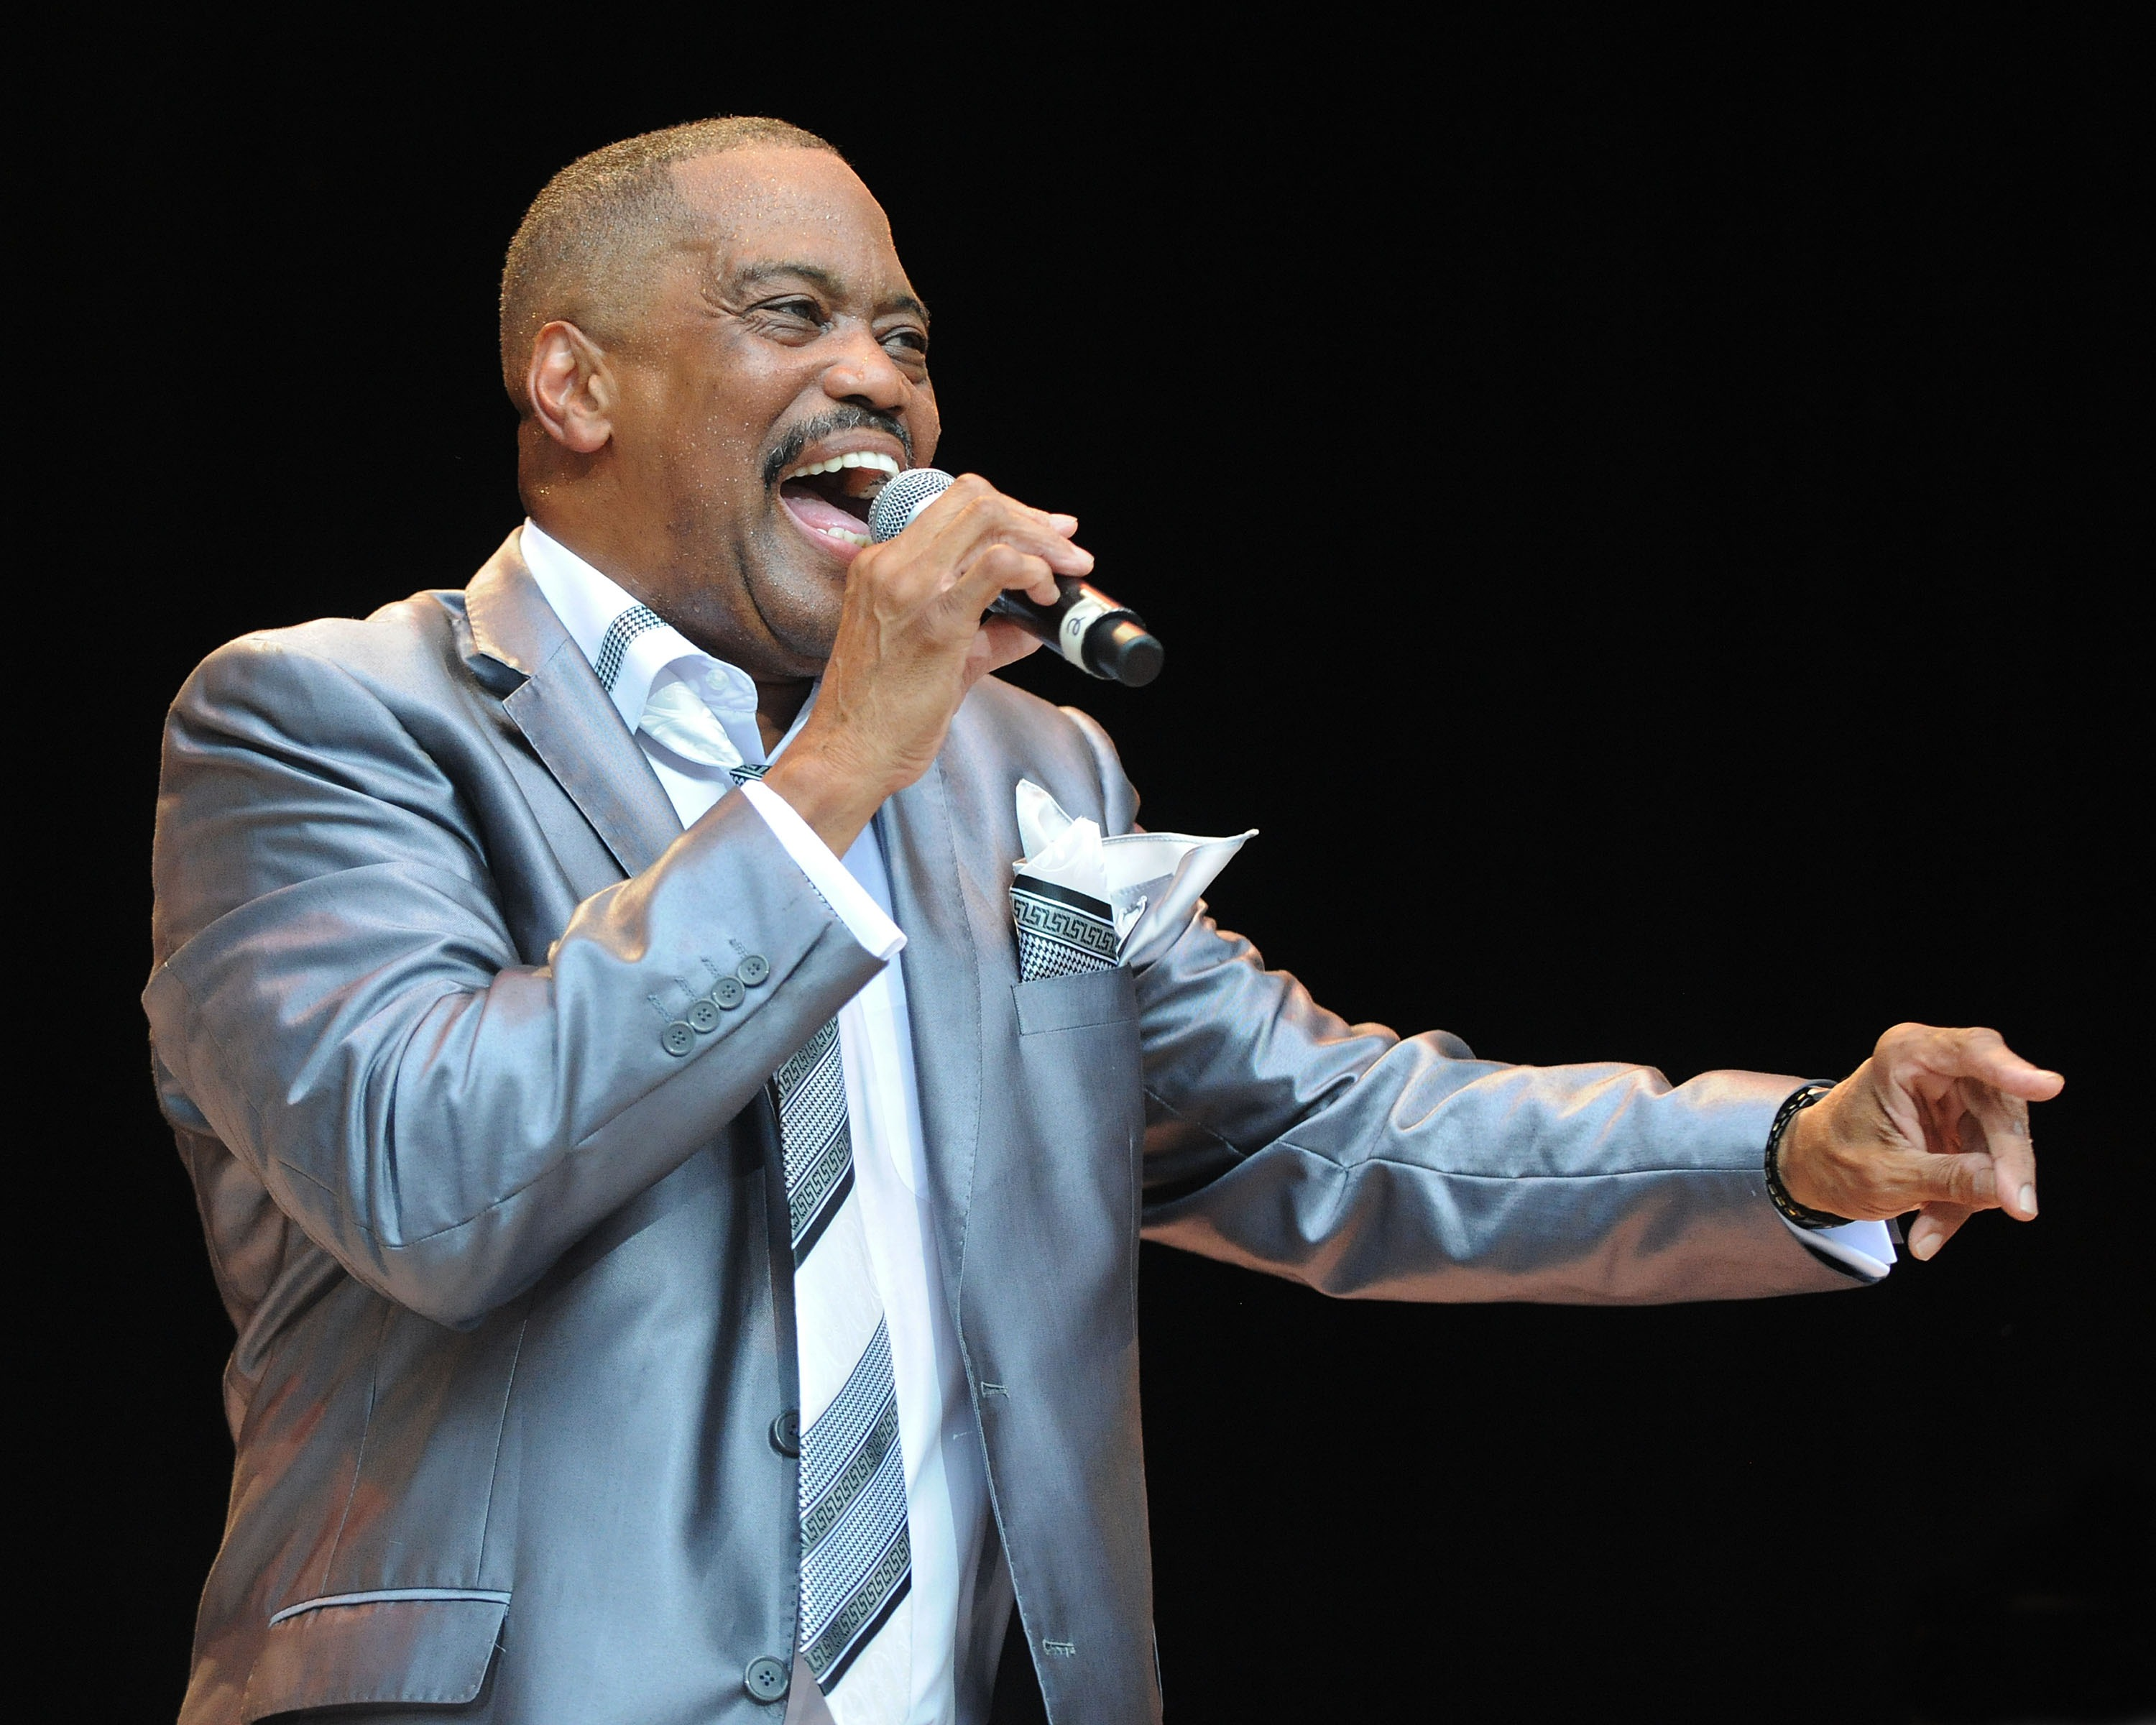 Cuba Gooding, Sr. of The Main Ingredient performs at Chastain Park Amphitheater on July 10, 2013 in Atlanta, Georgia.